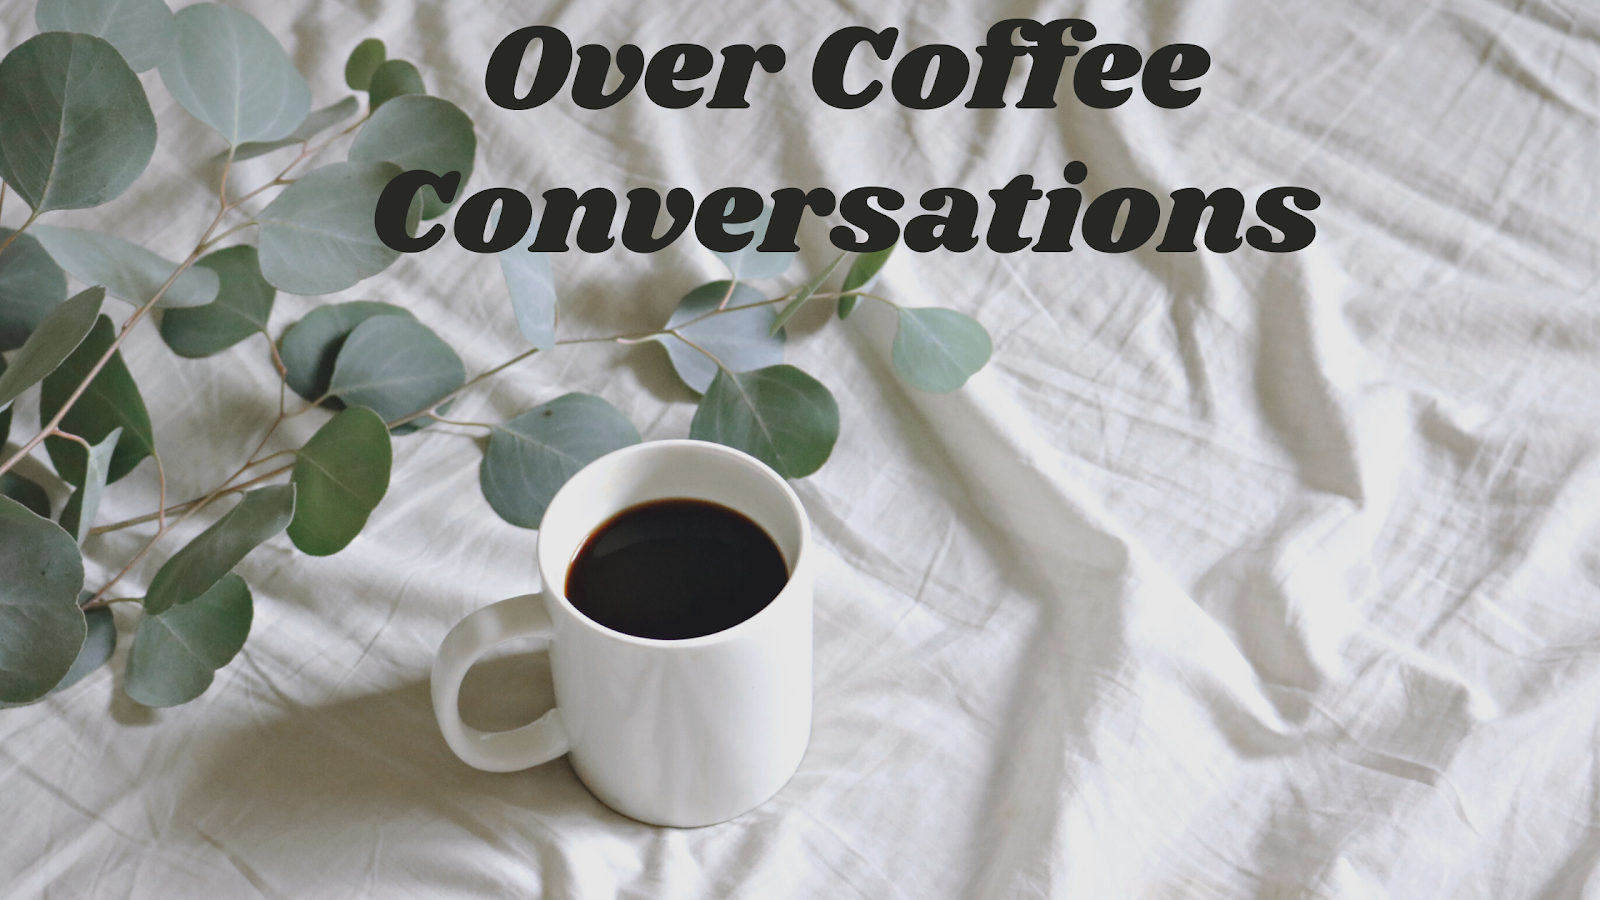 Over Coffee Conversations